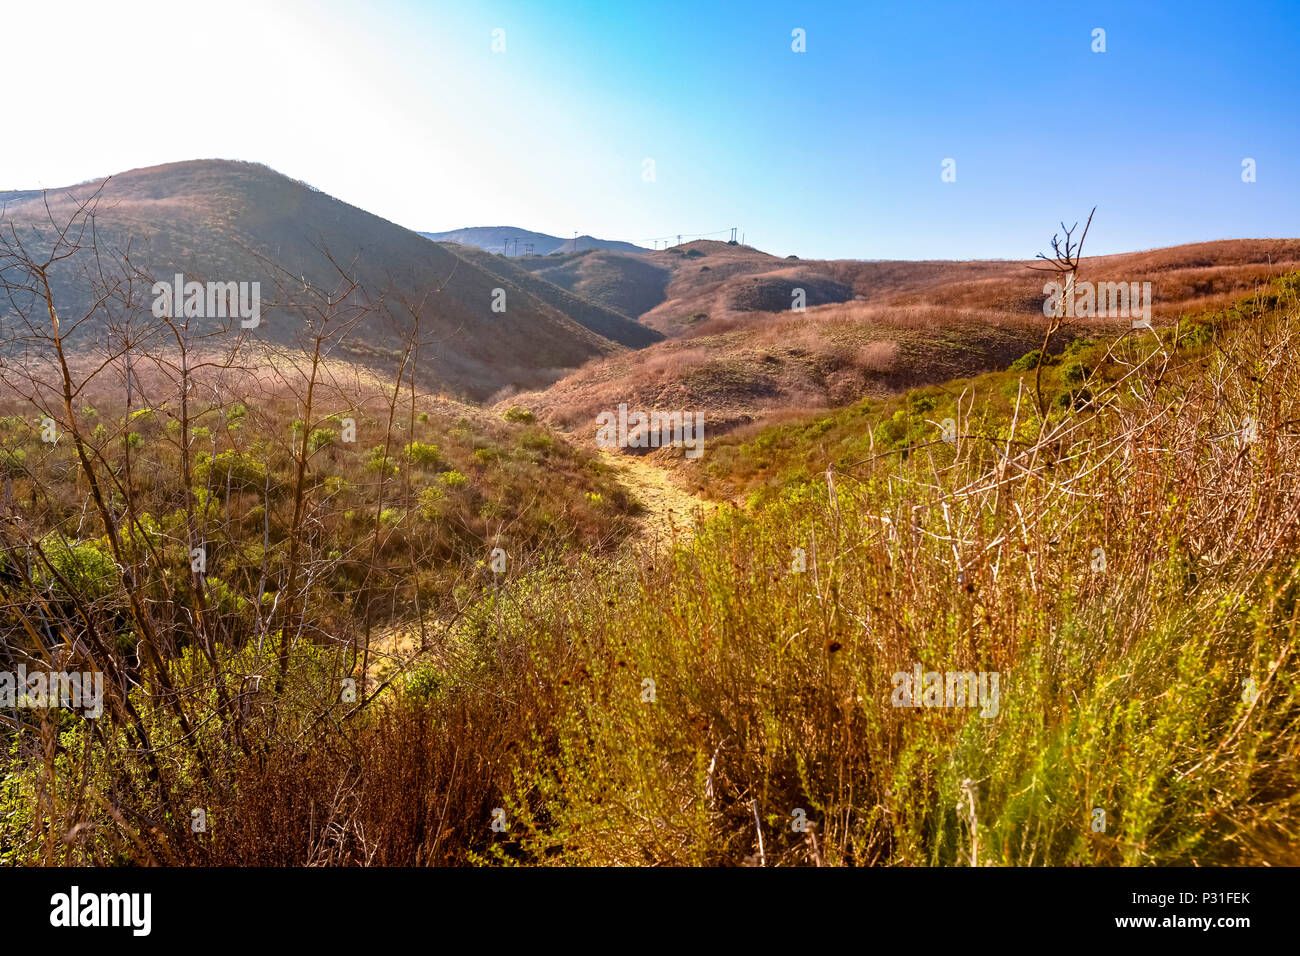 Hiking the hills in San Clemente Calfiornia Stock Photo